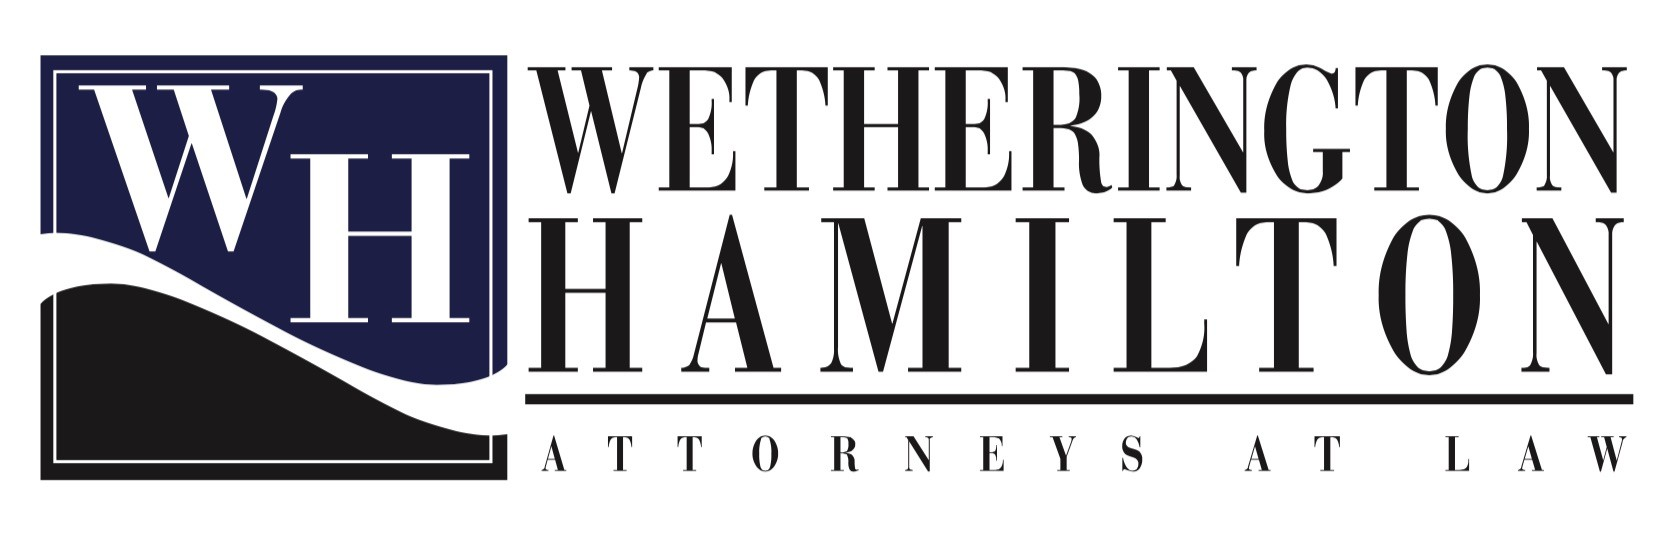 Tampa Law FIrm